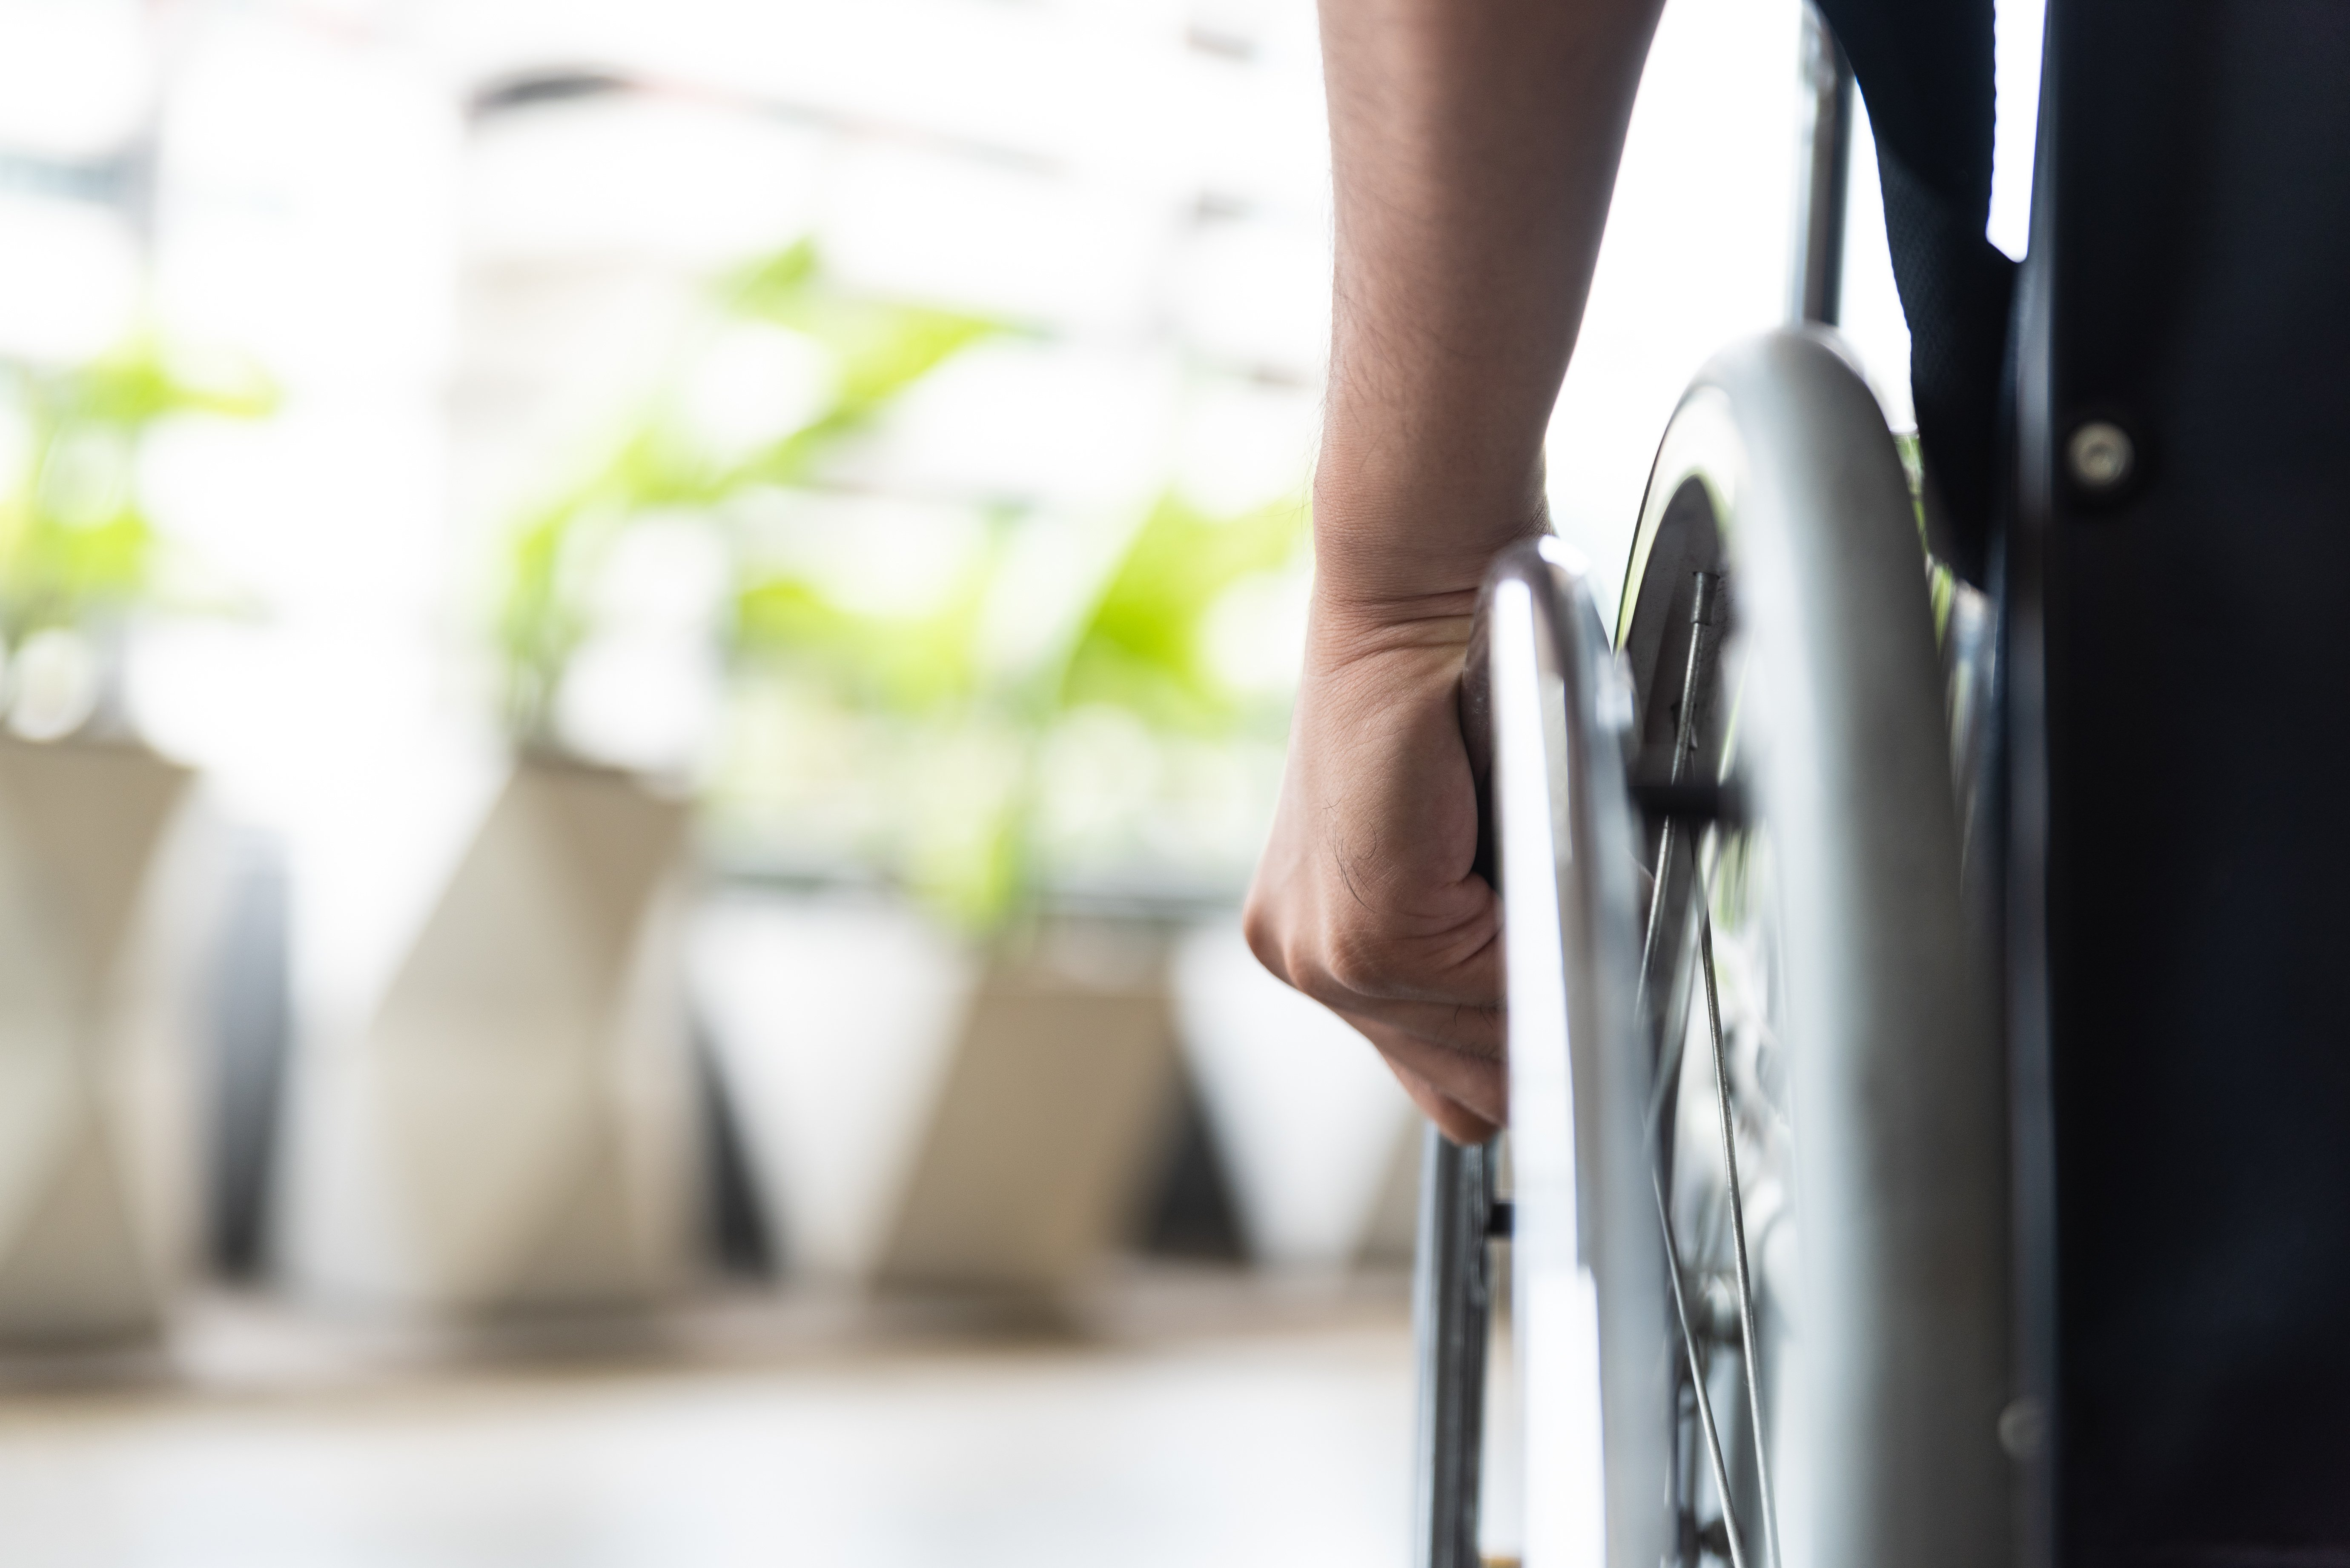 I've Lost a Limb due to Amputation. Do I Qualify for Disability Benefits?